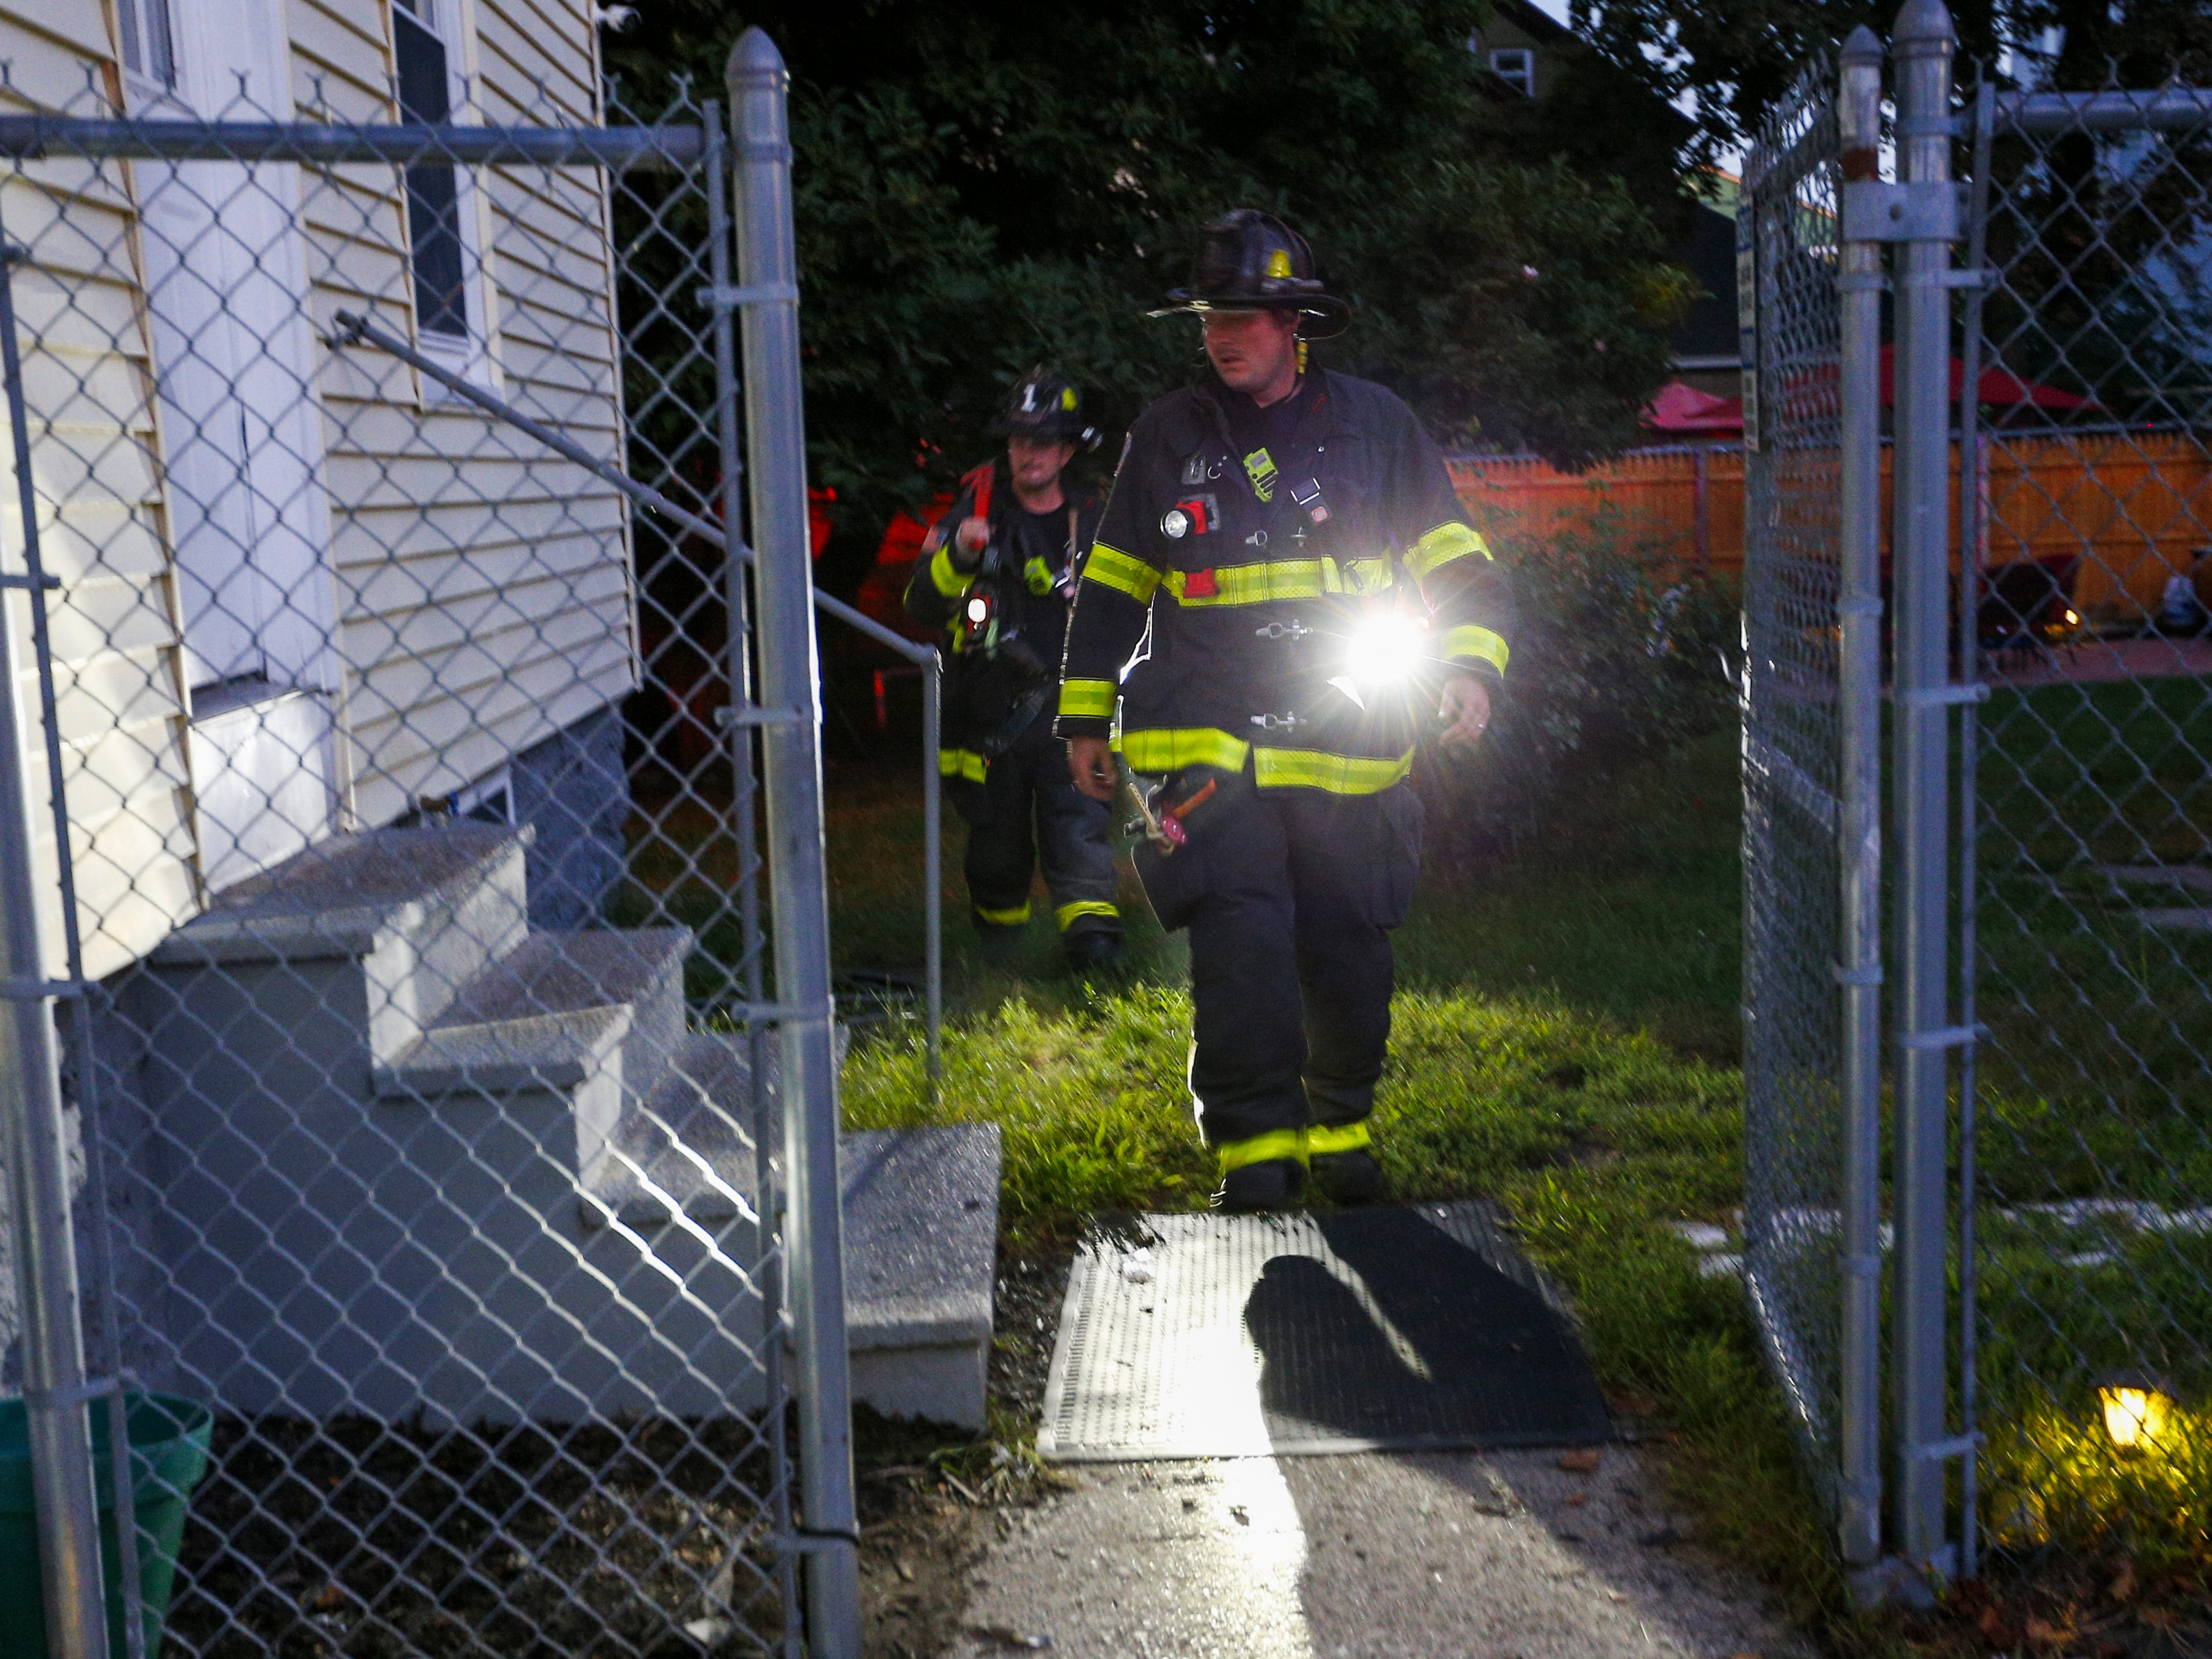 Firefighters search for a way into a house to check the gas line in Lawrence, Mass. on Sept. 13, 2018. A series of reported gas explosions in towns north of Boston Massachusetts set homes ablaze and forced the mandatory evacuation of residents.